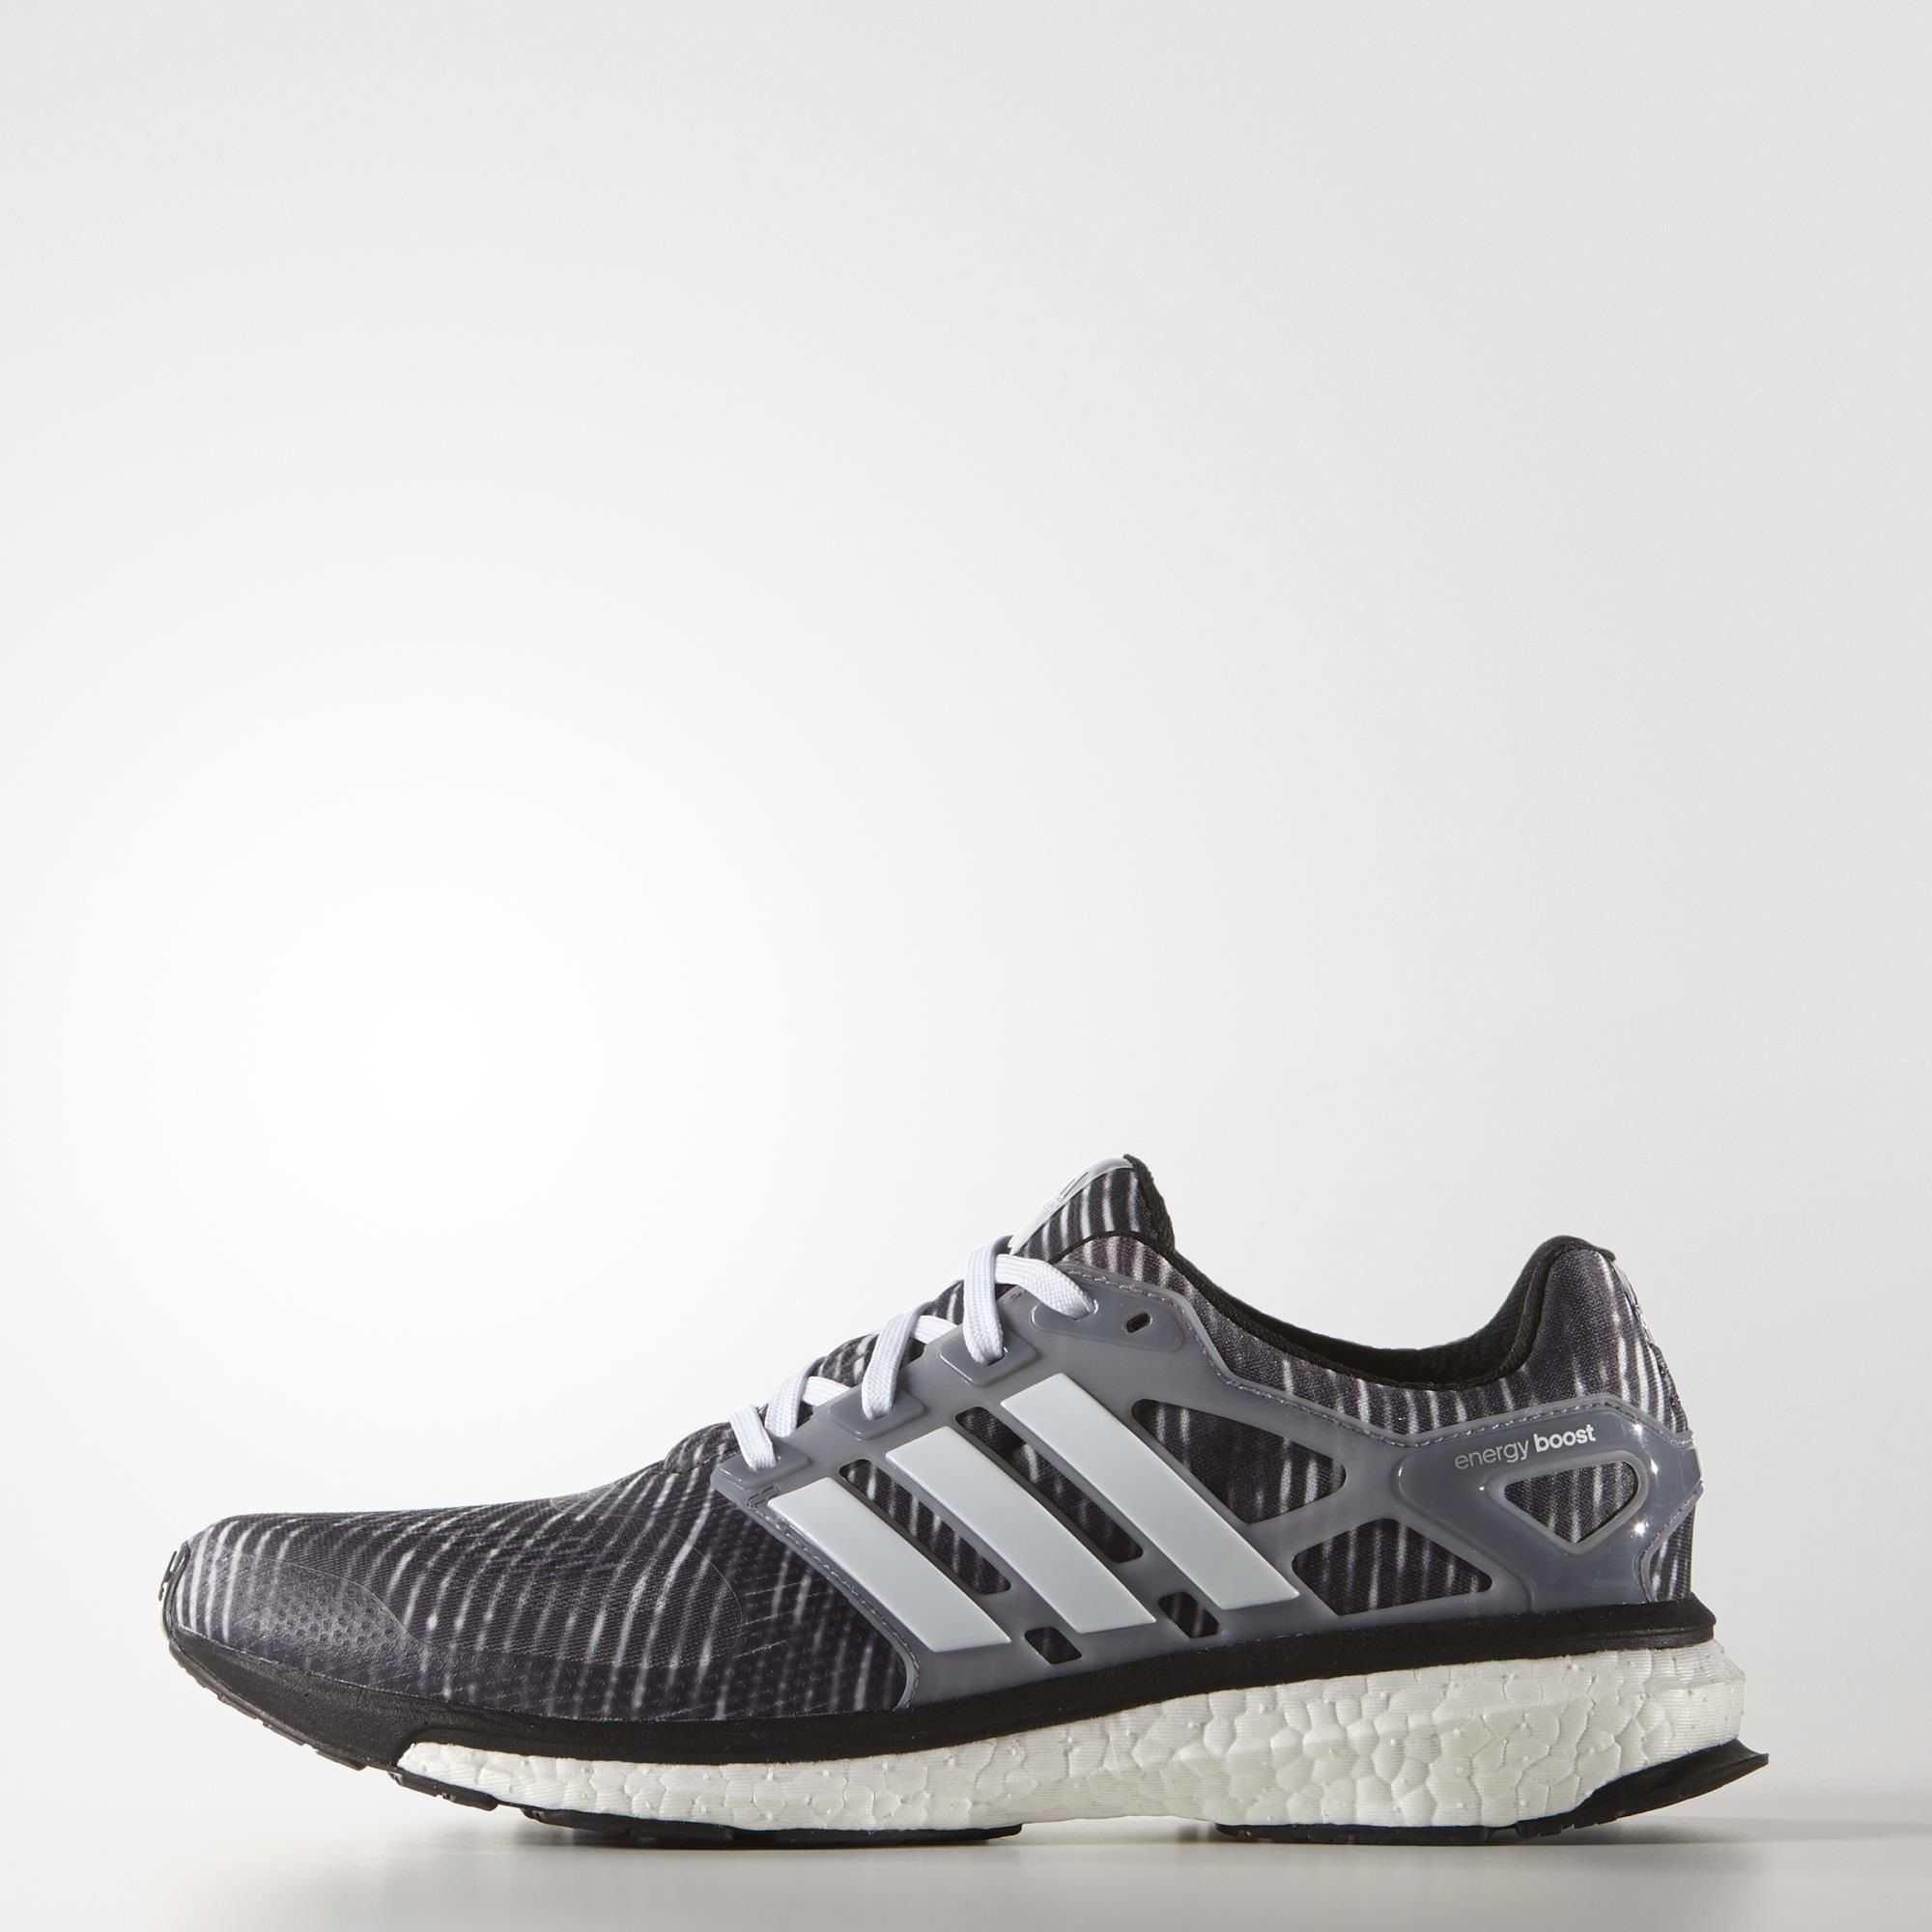 adidas men's adipure gazelle running shoes nz